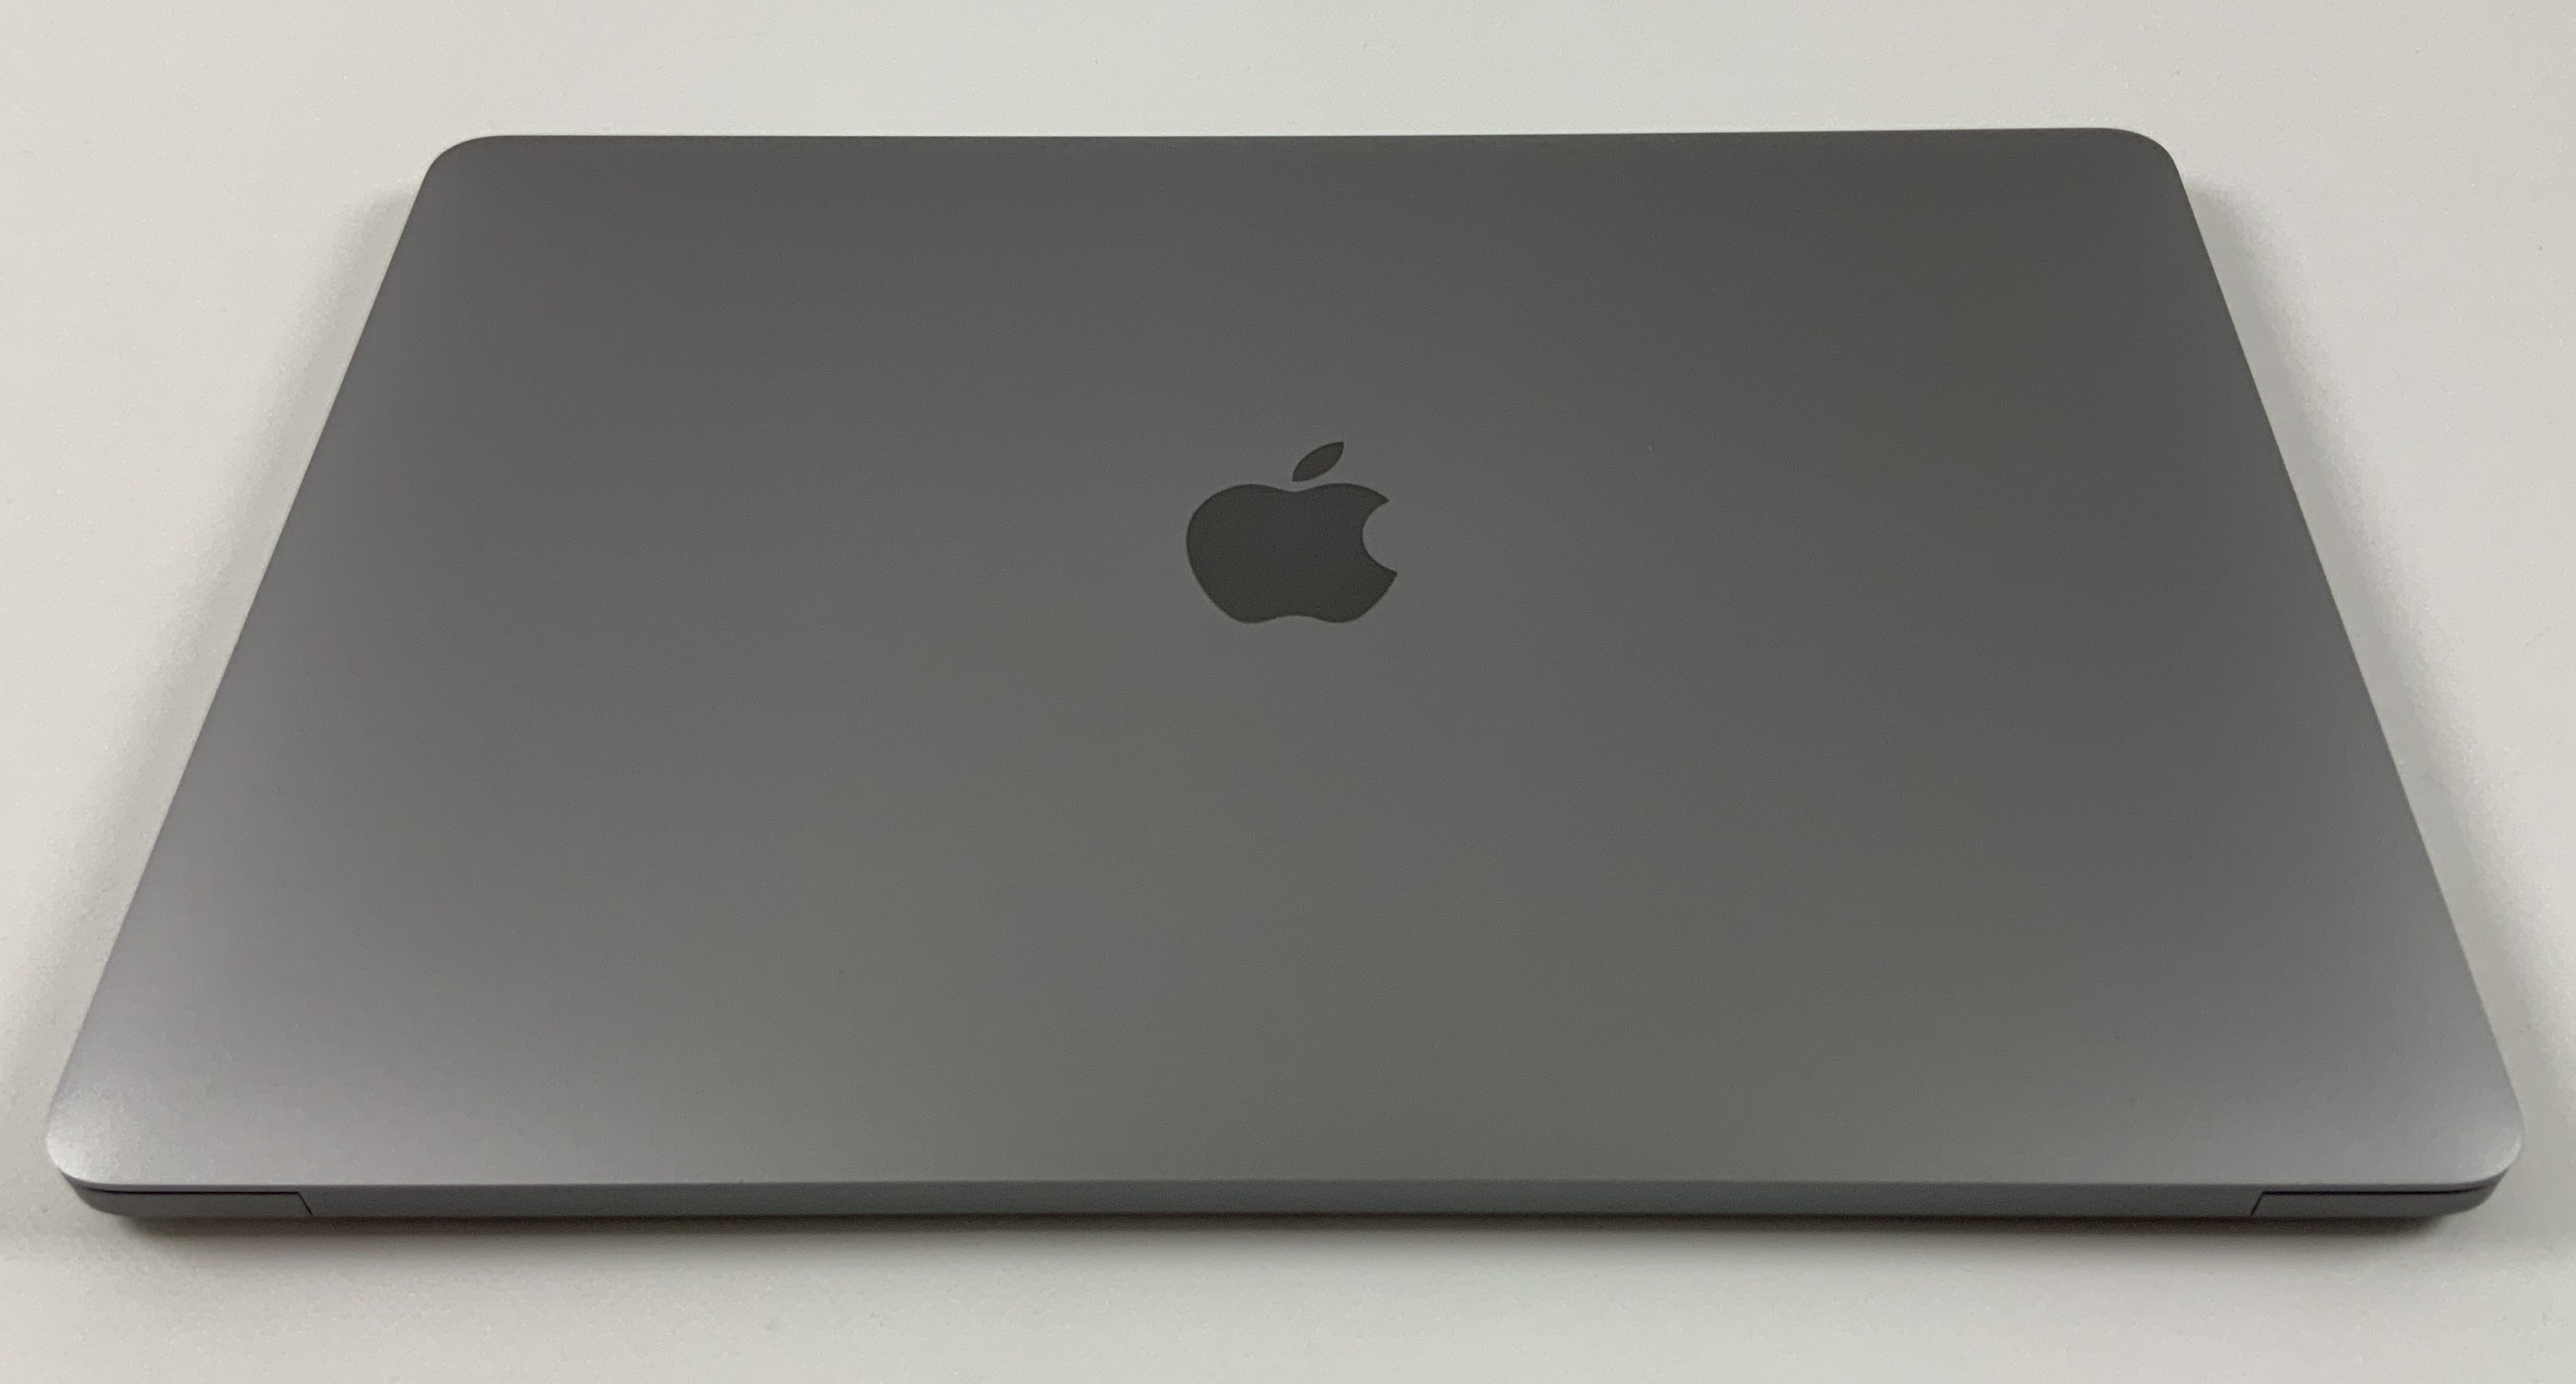 "MacBook Pro 13"" 4TBT Mid 2019 (Intel Quad-Core i5 2.4 GHz 8 GB RAM 256 GB SSD), Space Gray, Intel Quad-Core i5 2.4 GHz, 8 GB RAM, 256 GB SSD, Afbeelding 2"